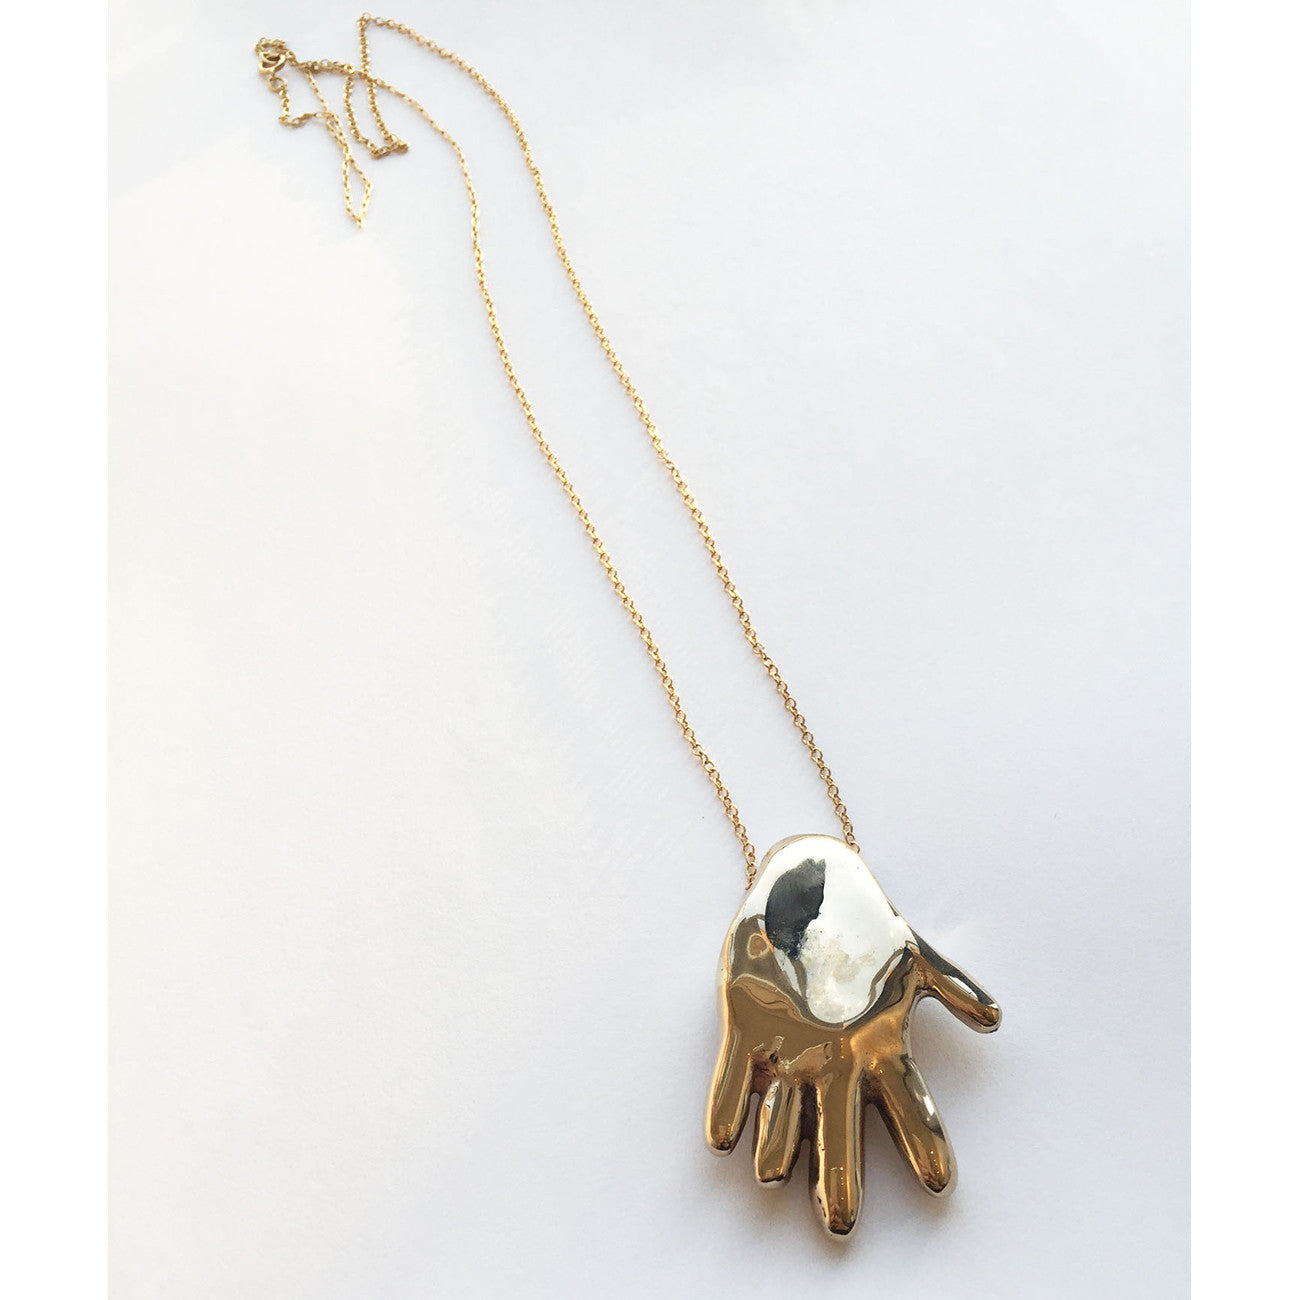 Helen Levi Gilded Hand Necklace on Gold Chain